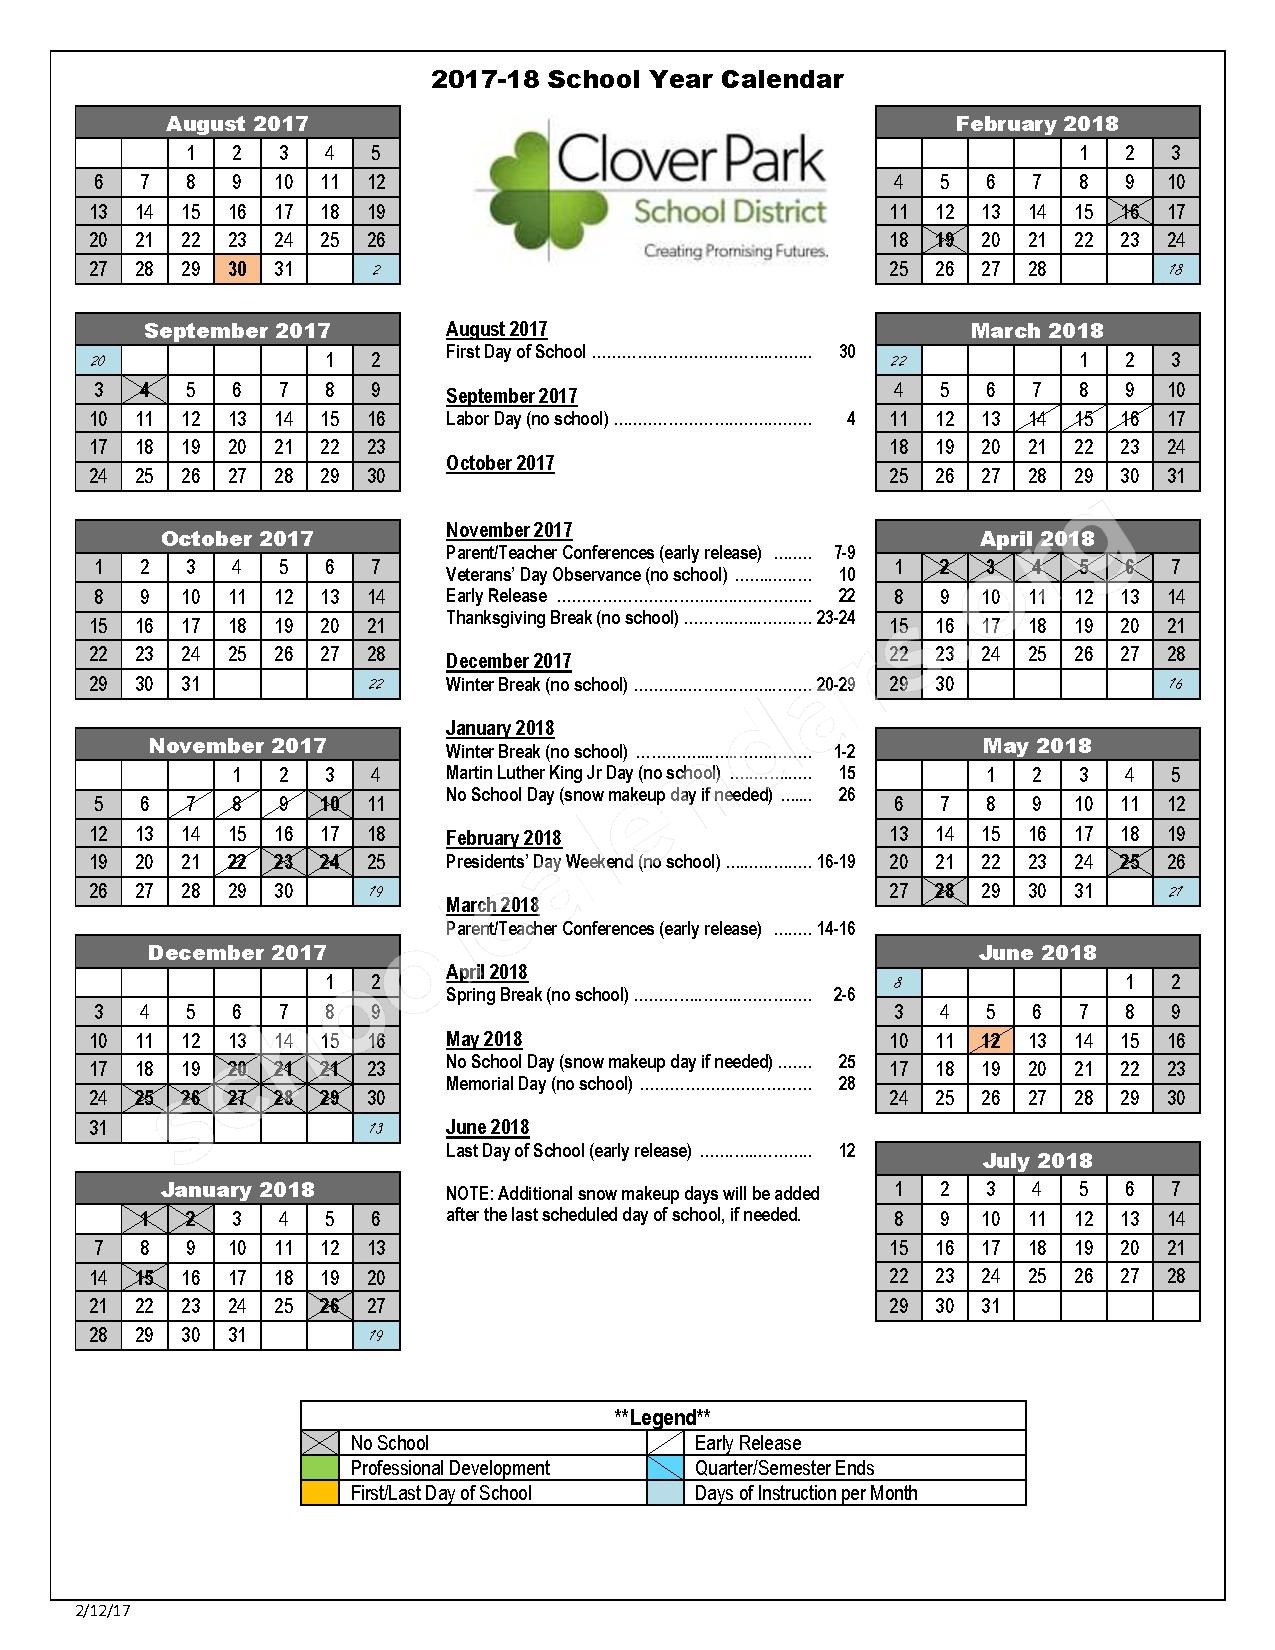 2017 - 2018 School Calendar – Clover Park School District – page 1